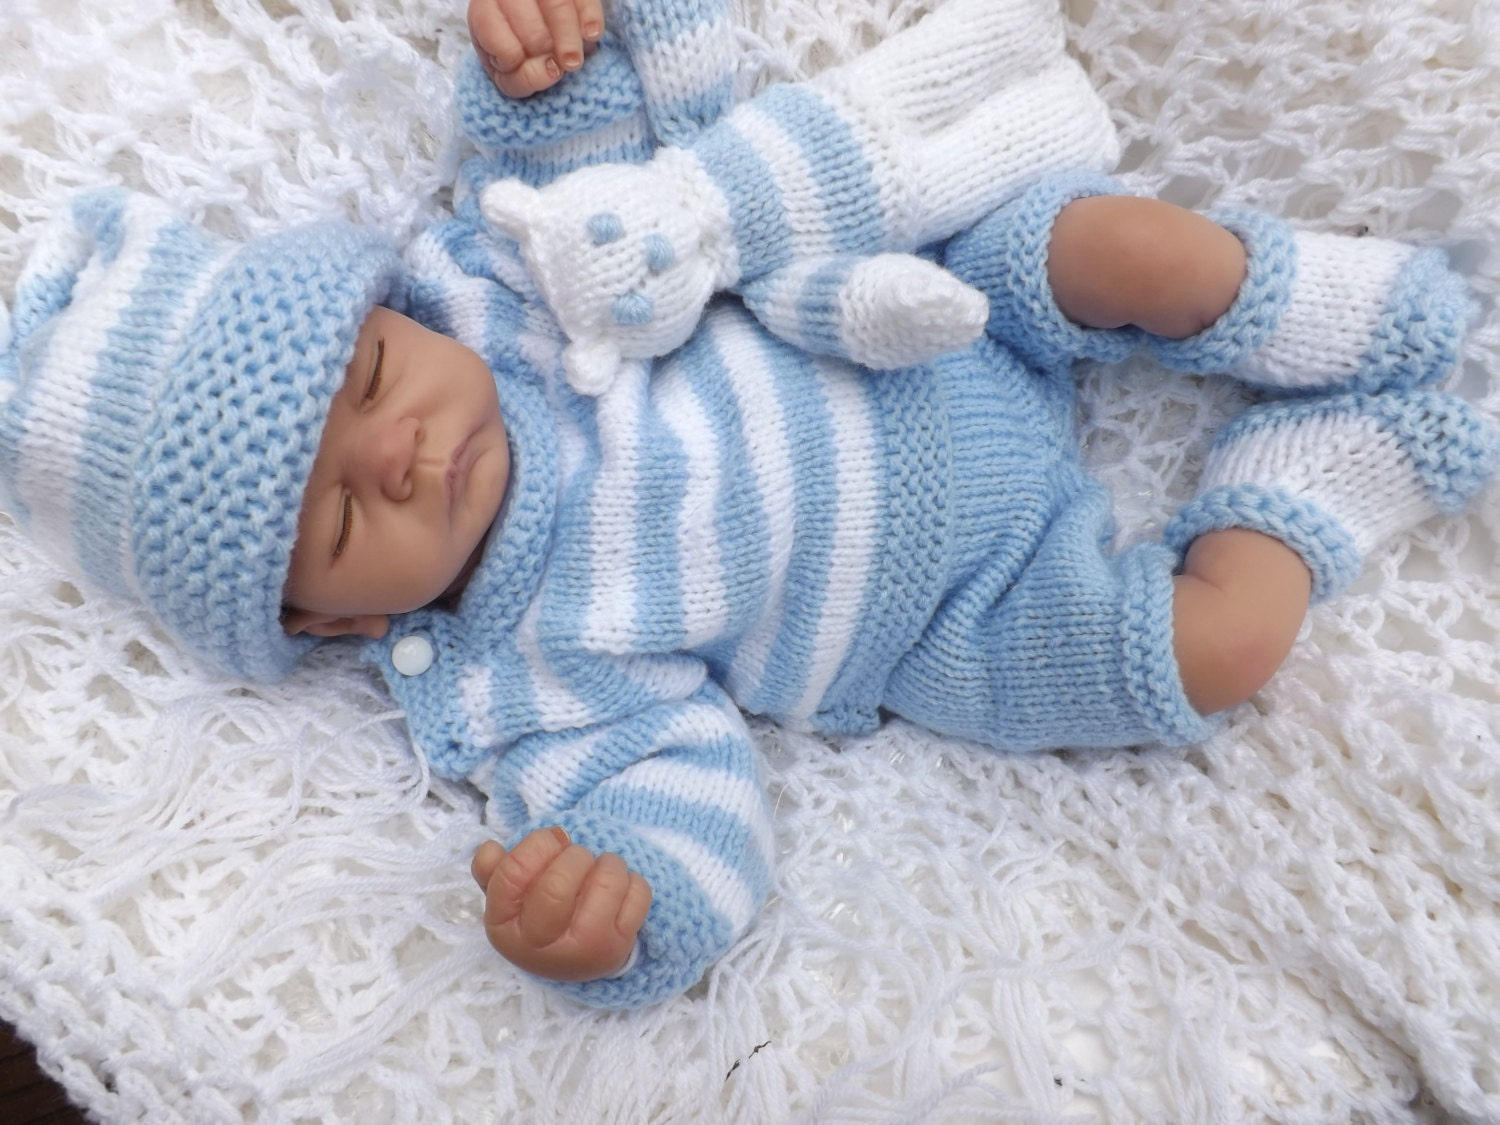 Knitting Pattern Striped Sweater : baby knitting pattern striped sweater pants hat booties and